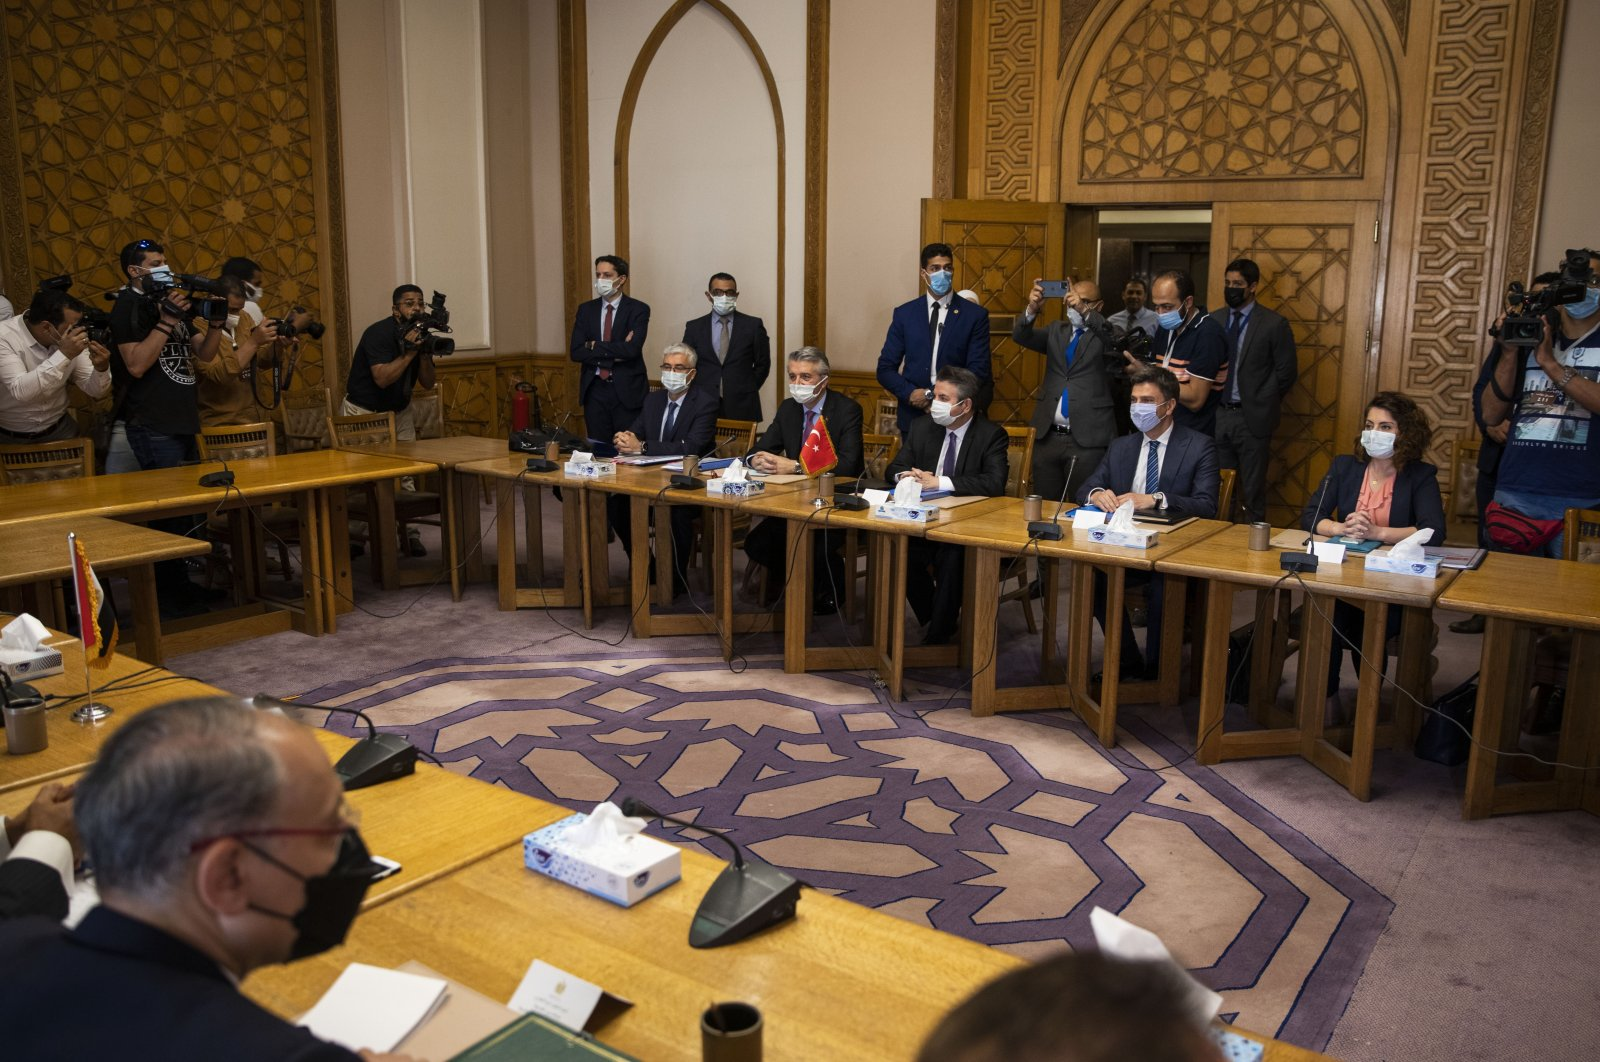 Turkish Foreign Ministry Deputy Sedat Önal, seated third right, meets with Hamdi Sanad Loza, Egyptian deputy foreign minister, and their delegations, at the foreign ministry in Cairo, Egypt, Wednesday, May 5, 2021. (AP File Photo)